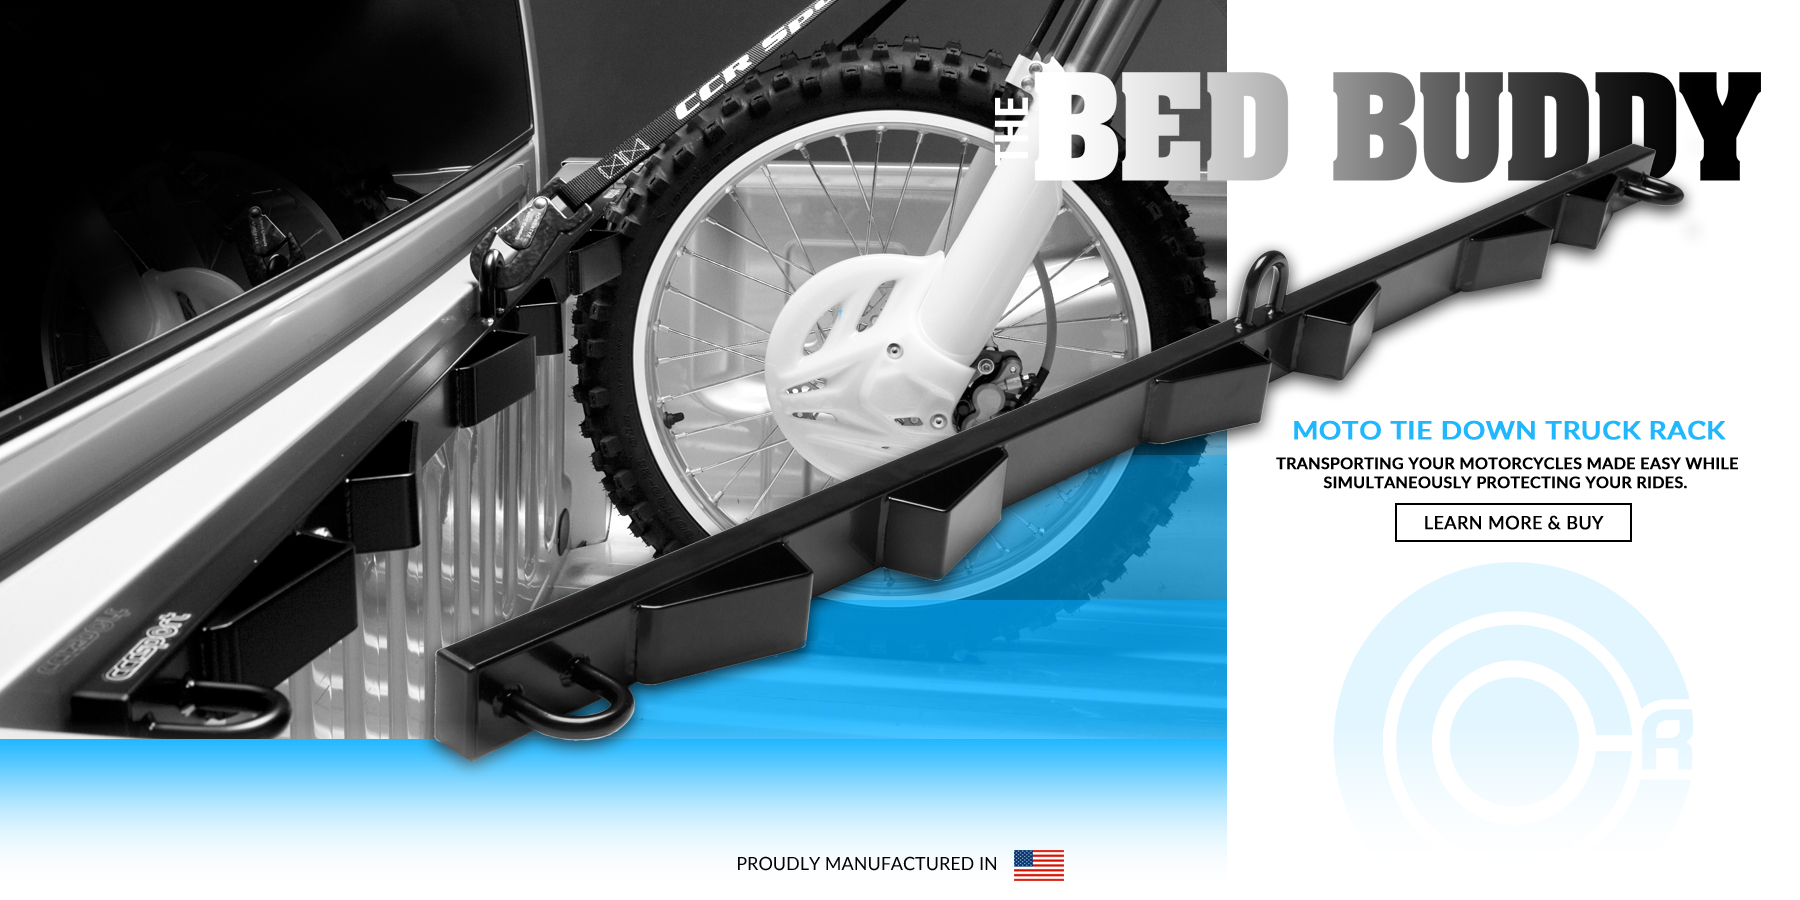 The CCR Sport Bed Buddy Motorcycle Tie Down Truck Rack makes transporting your bikes easy and protects your rides.